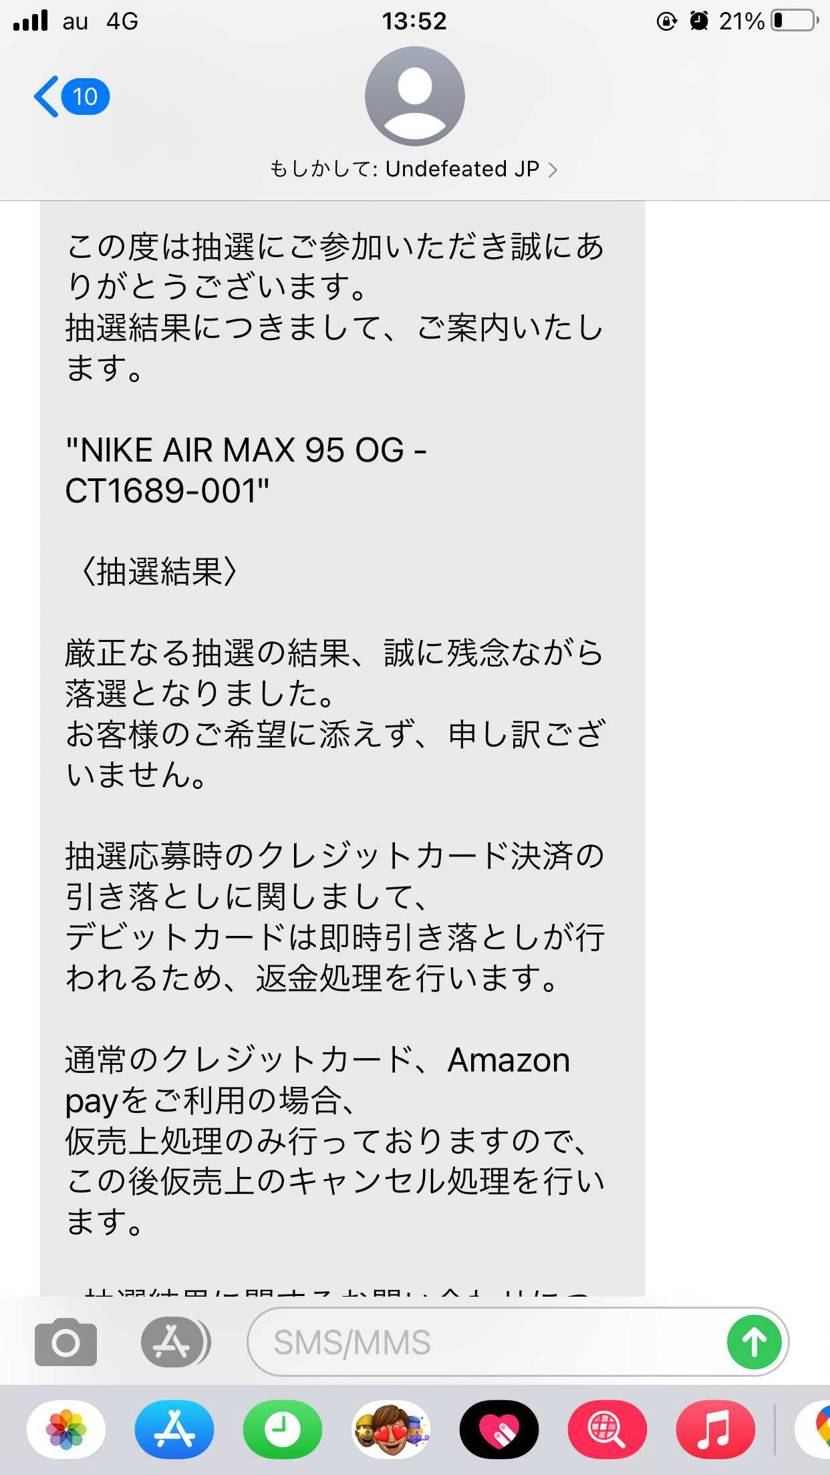 snkrs、アホモス、アンディ、kith、A +S、SNS、gr8全部ハズレで海